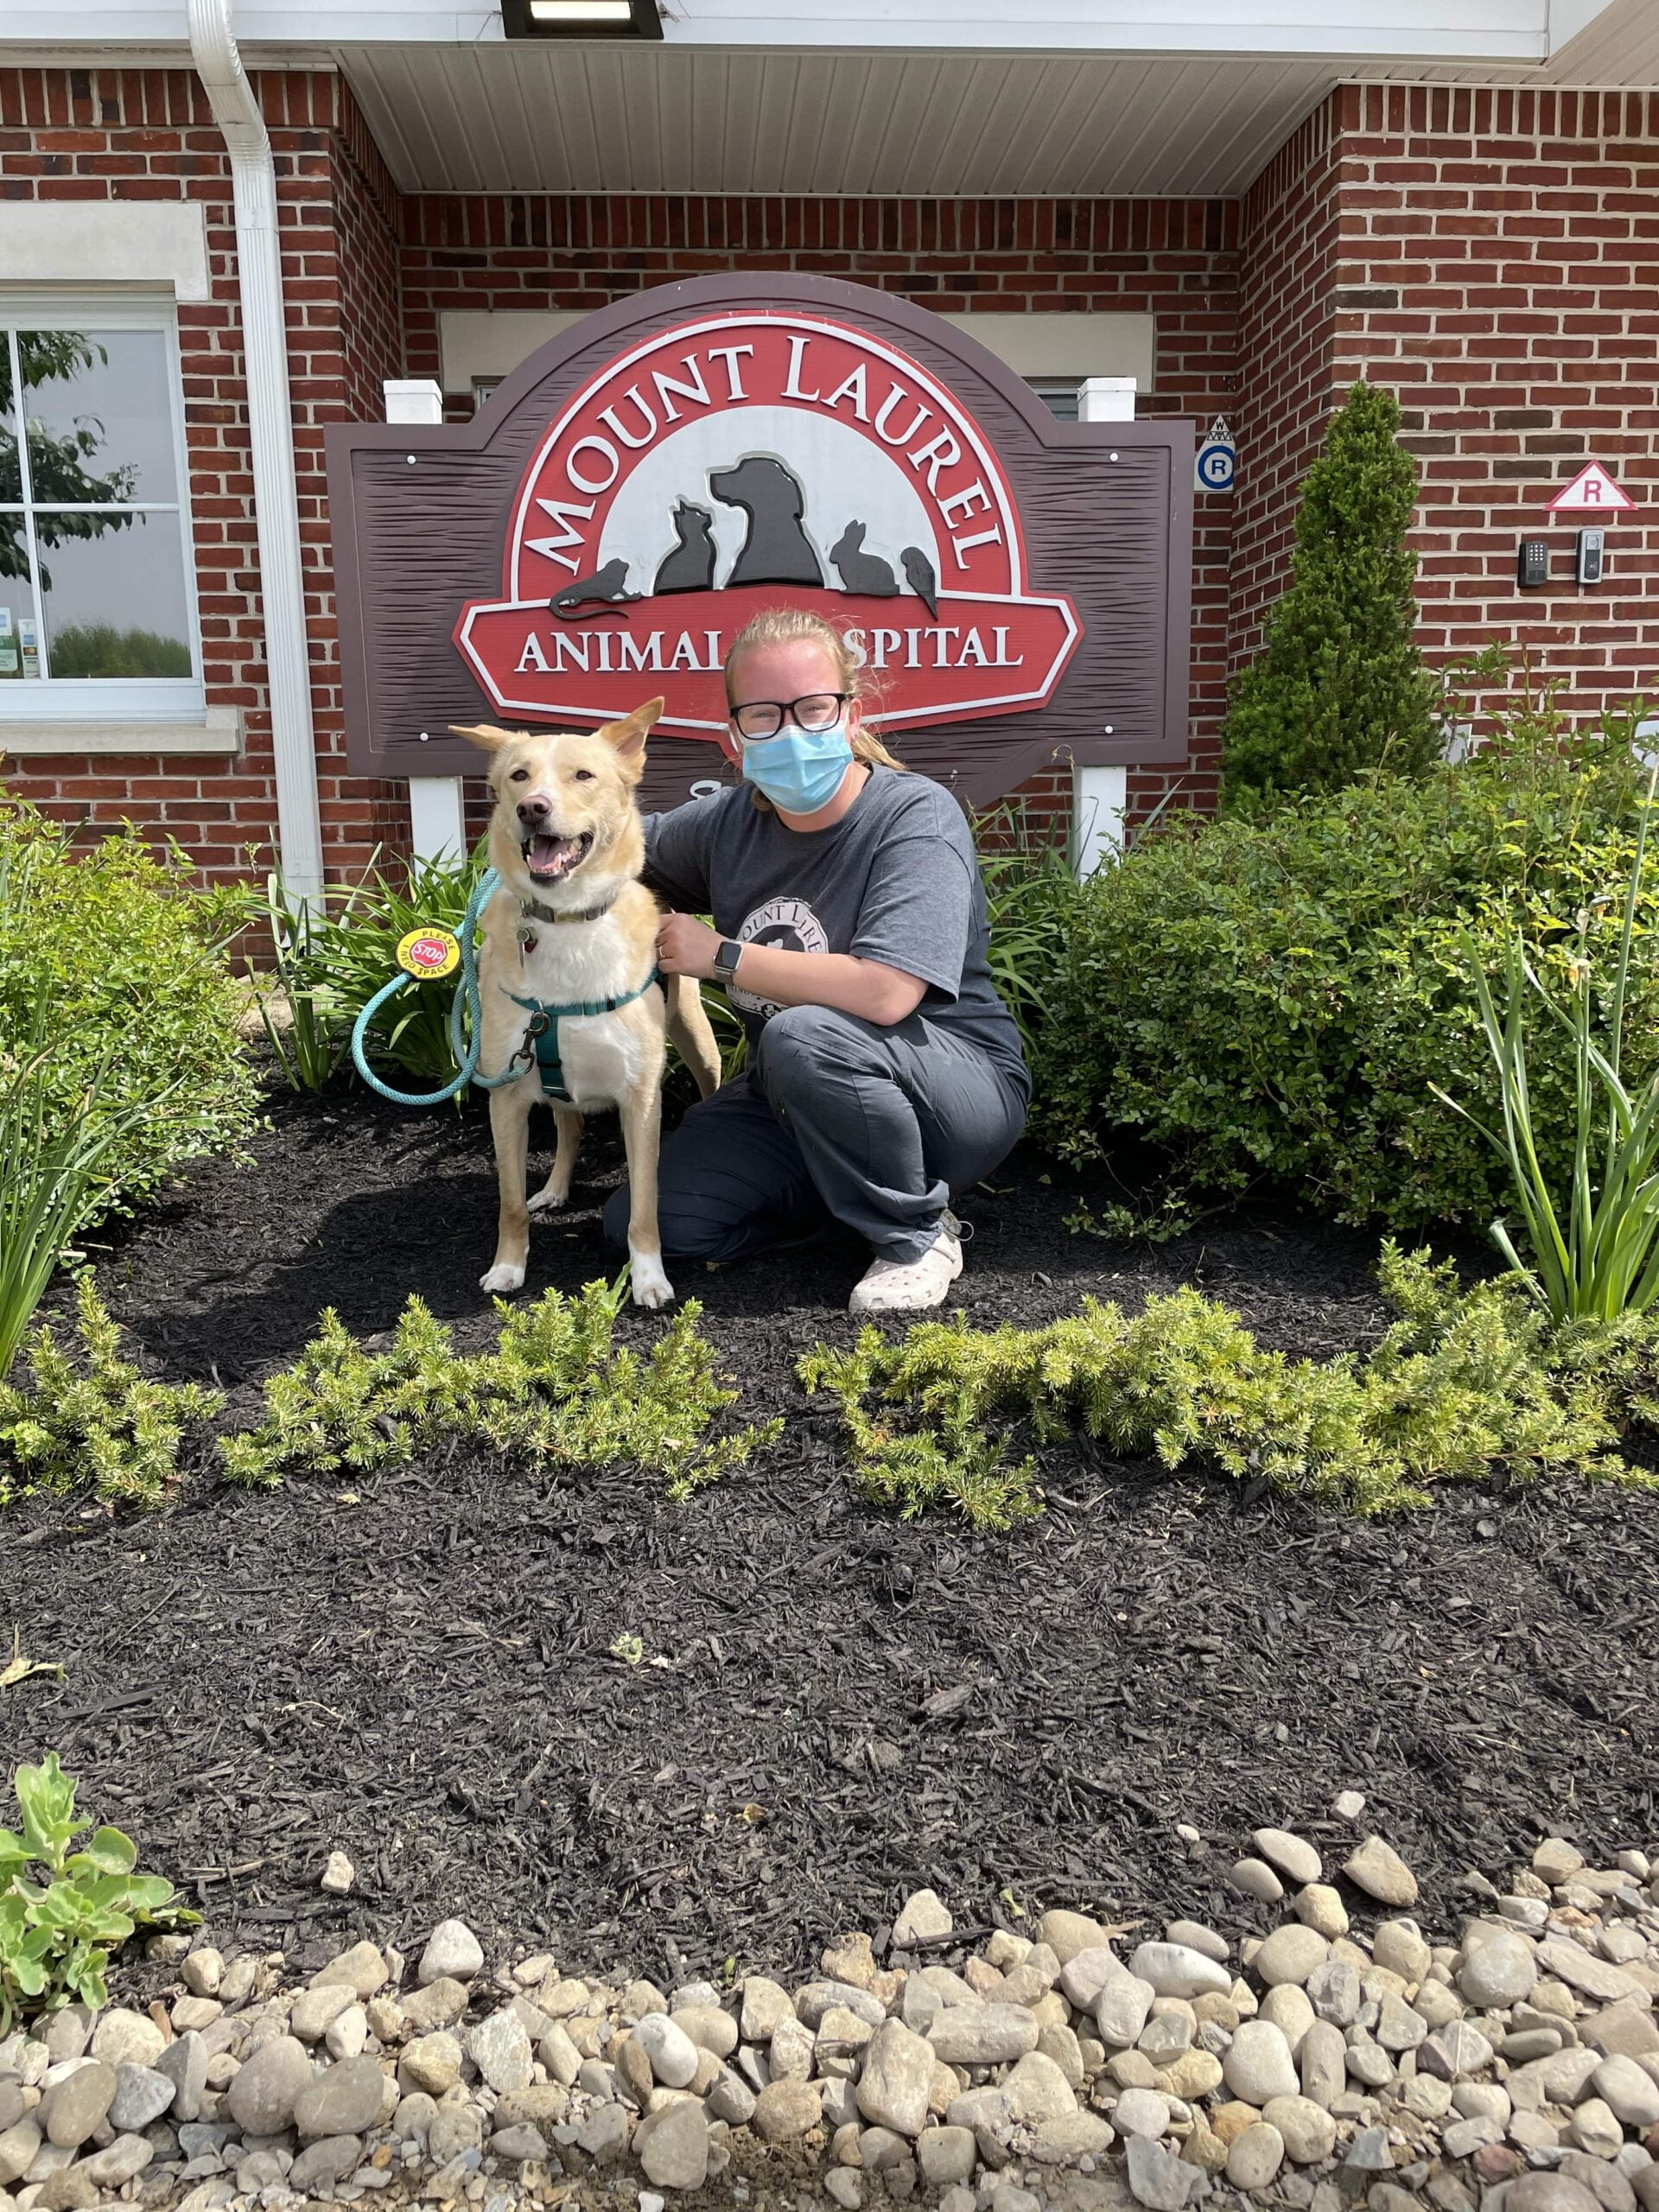 Local Veterinarian Introduces 'Happy Visits' to Calm Anxious Pets